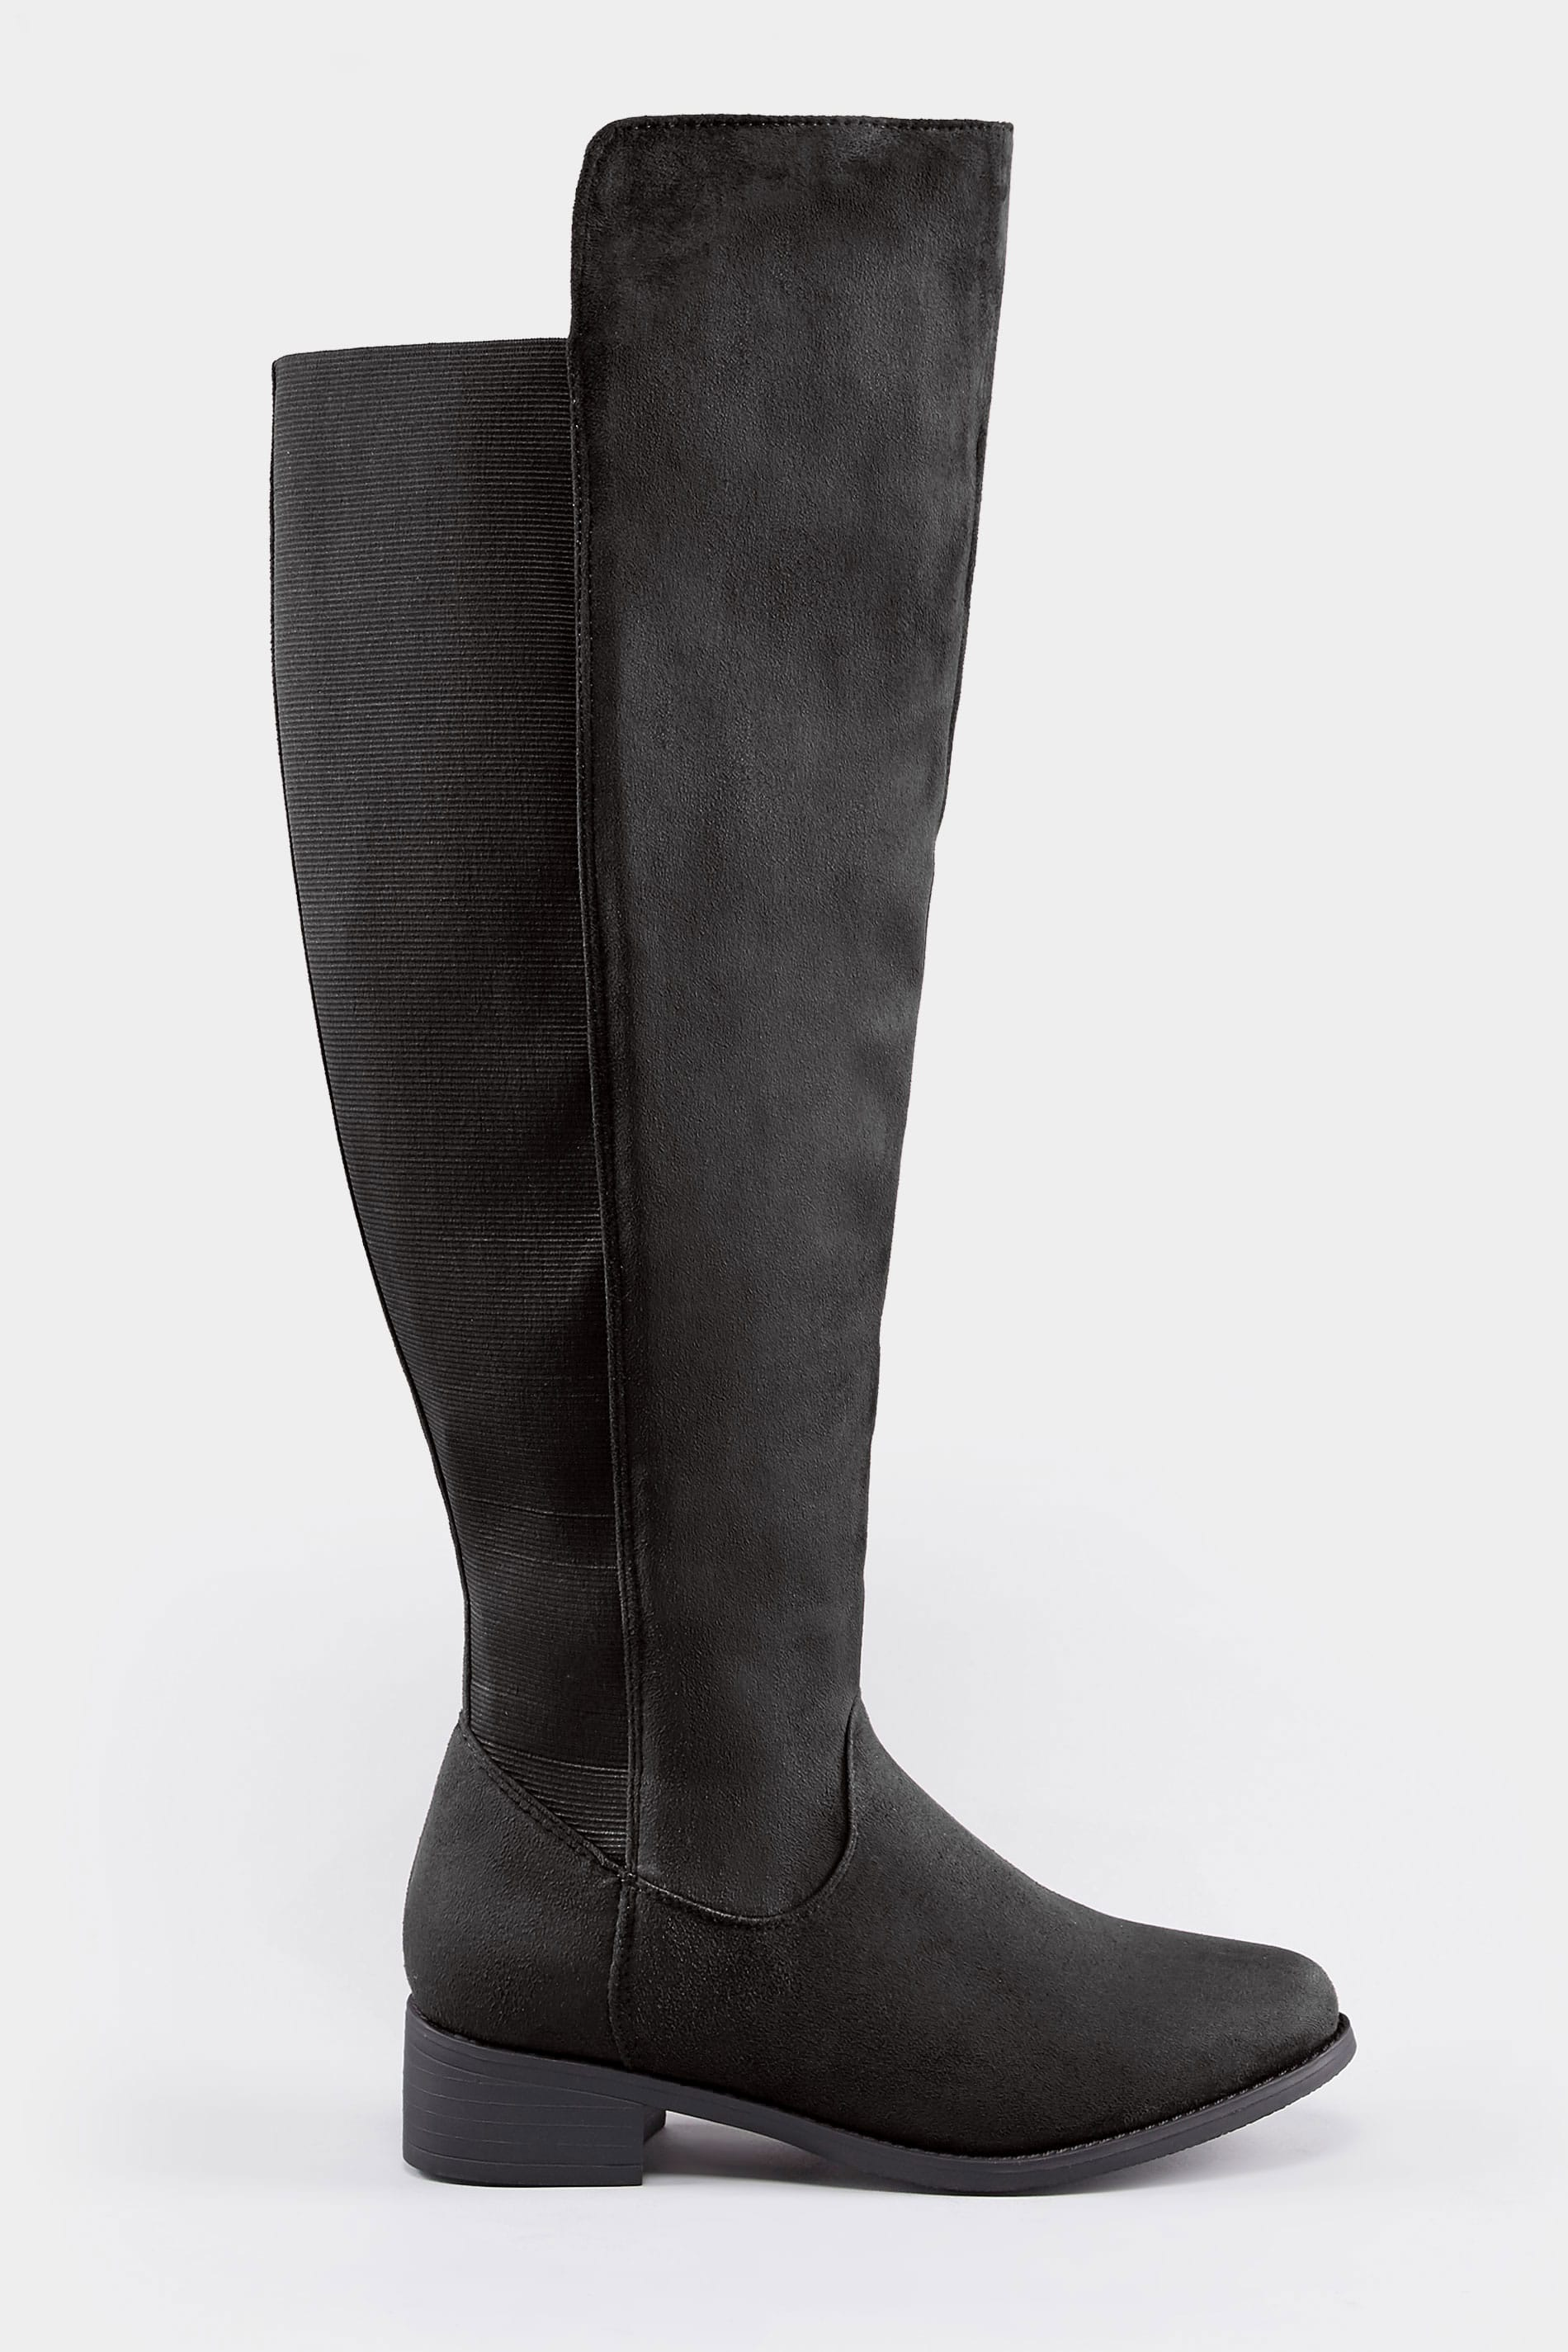 8484e93faeb Black XL Calf Over The Knee Boots With Stretch Panel In EEE Fit